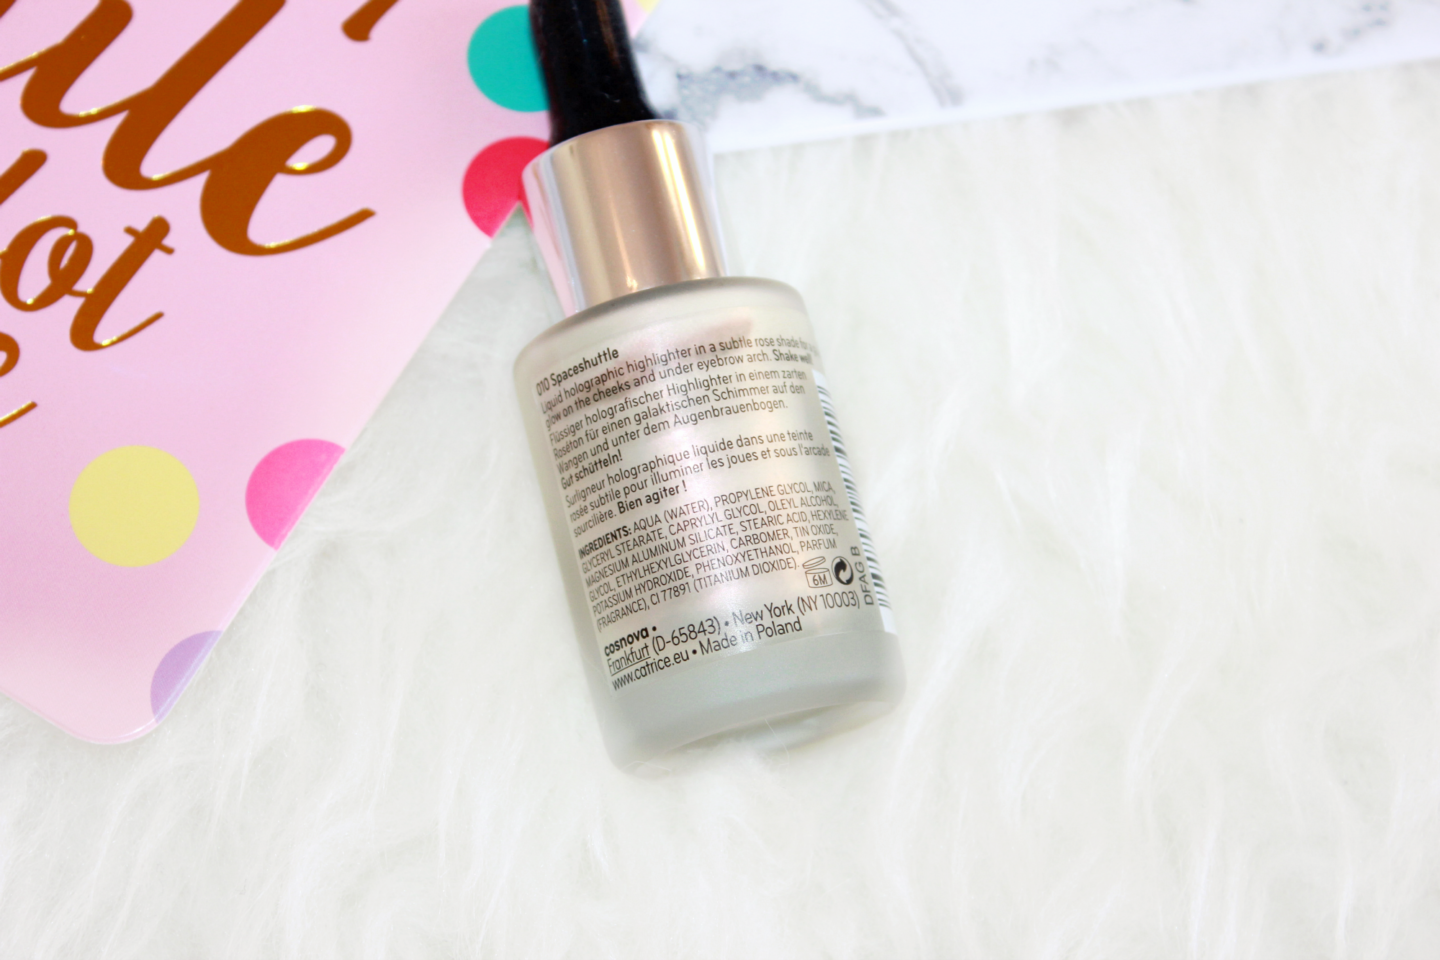 Catrice-Galactic-Highlighter-Drops-Review